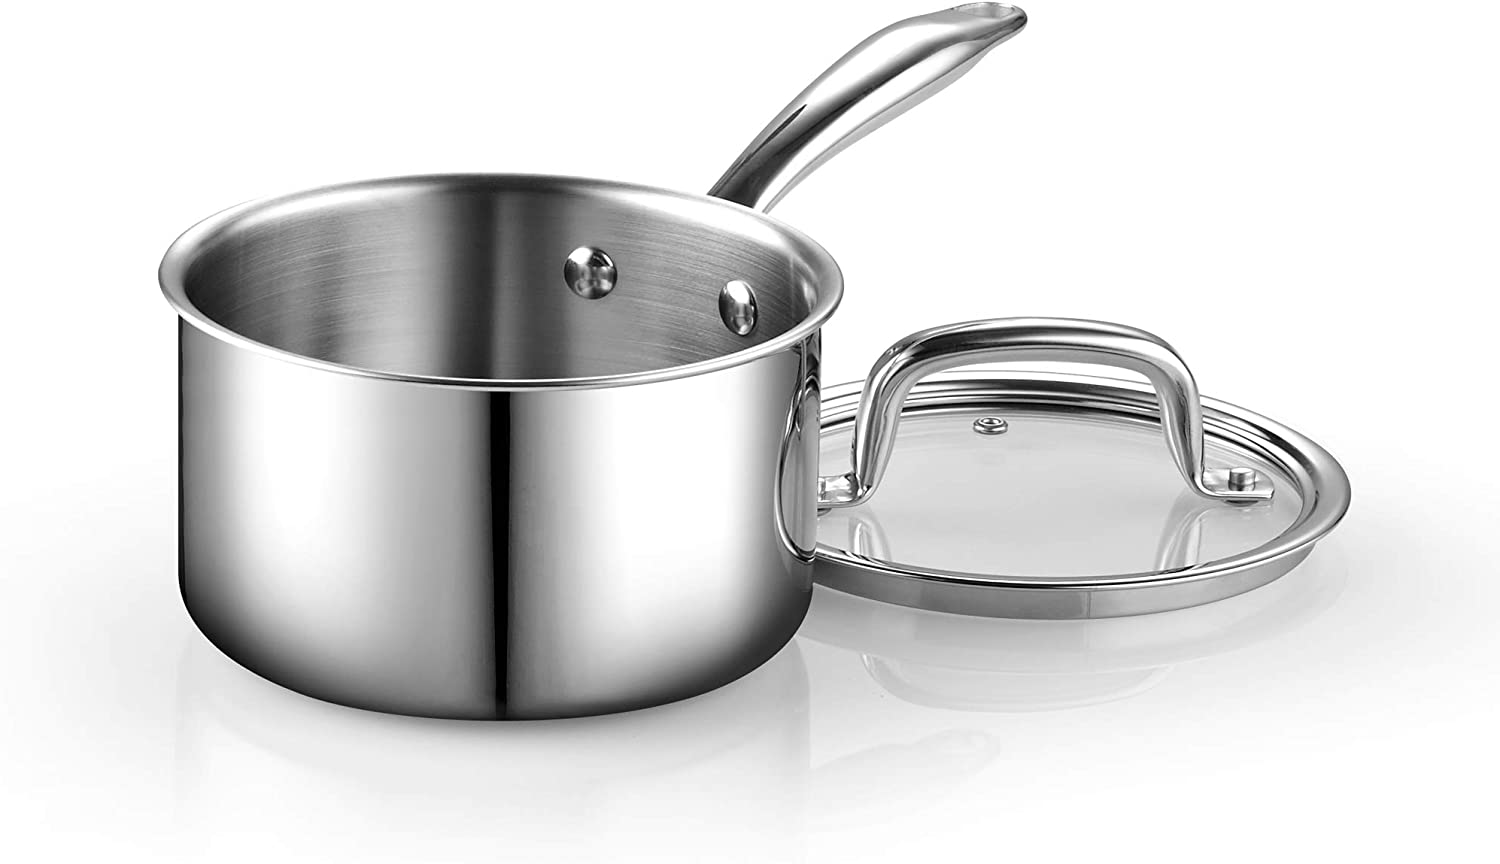 Cook N Home Tri Ply Clad Stainless Steel Sauce Pan With Lid 3 Quart Silver Amazon Co Uk Kitchen Home